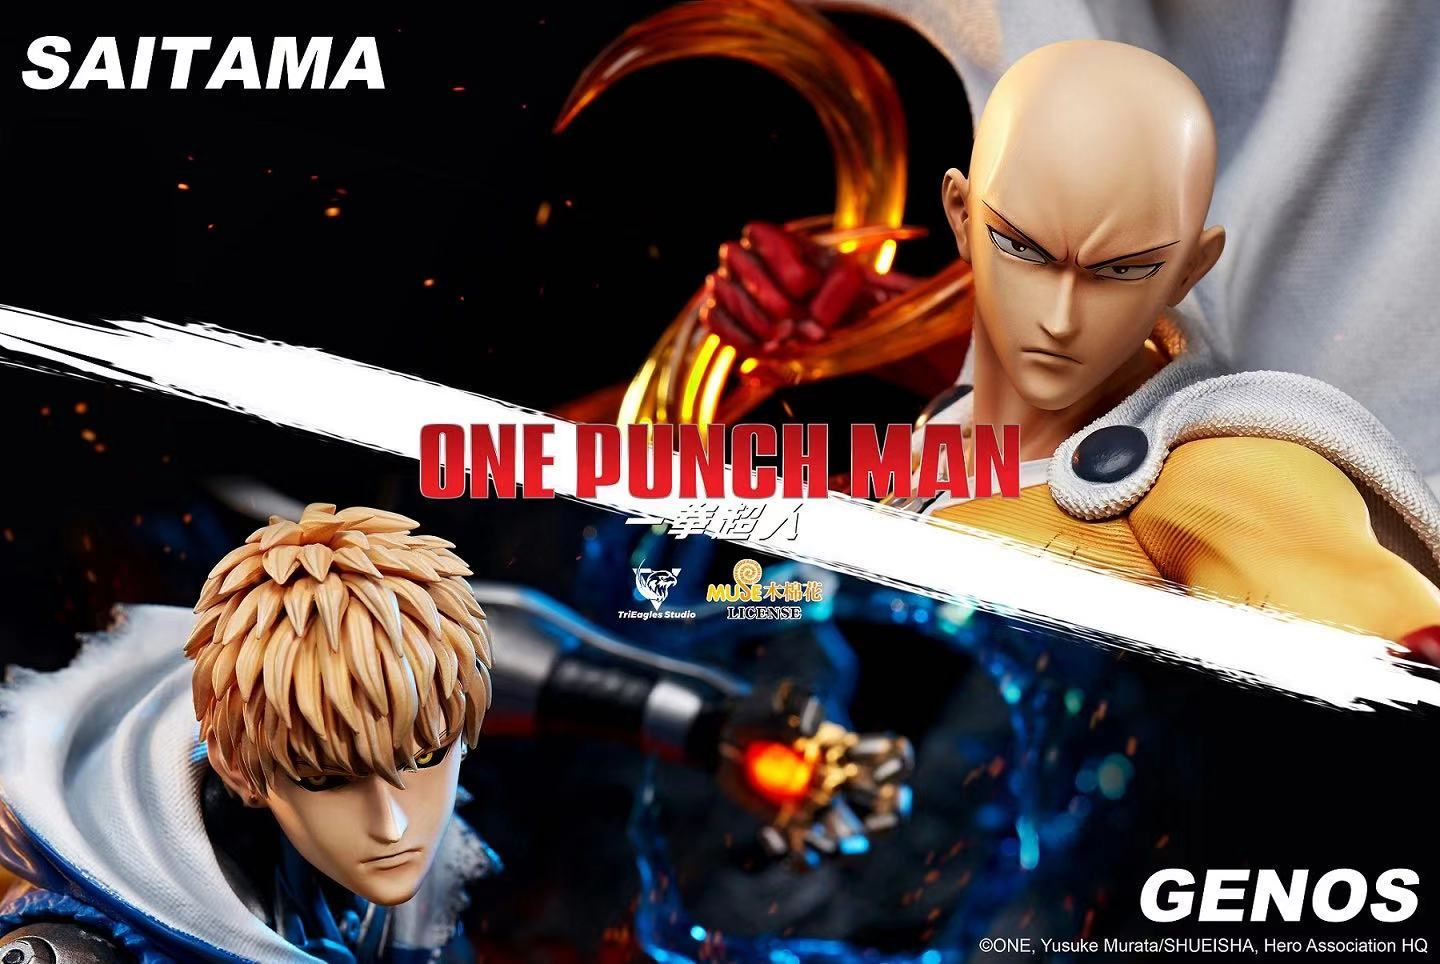 trieagles studio one punch man genos saitama statue 2